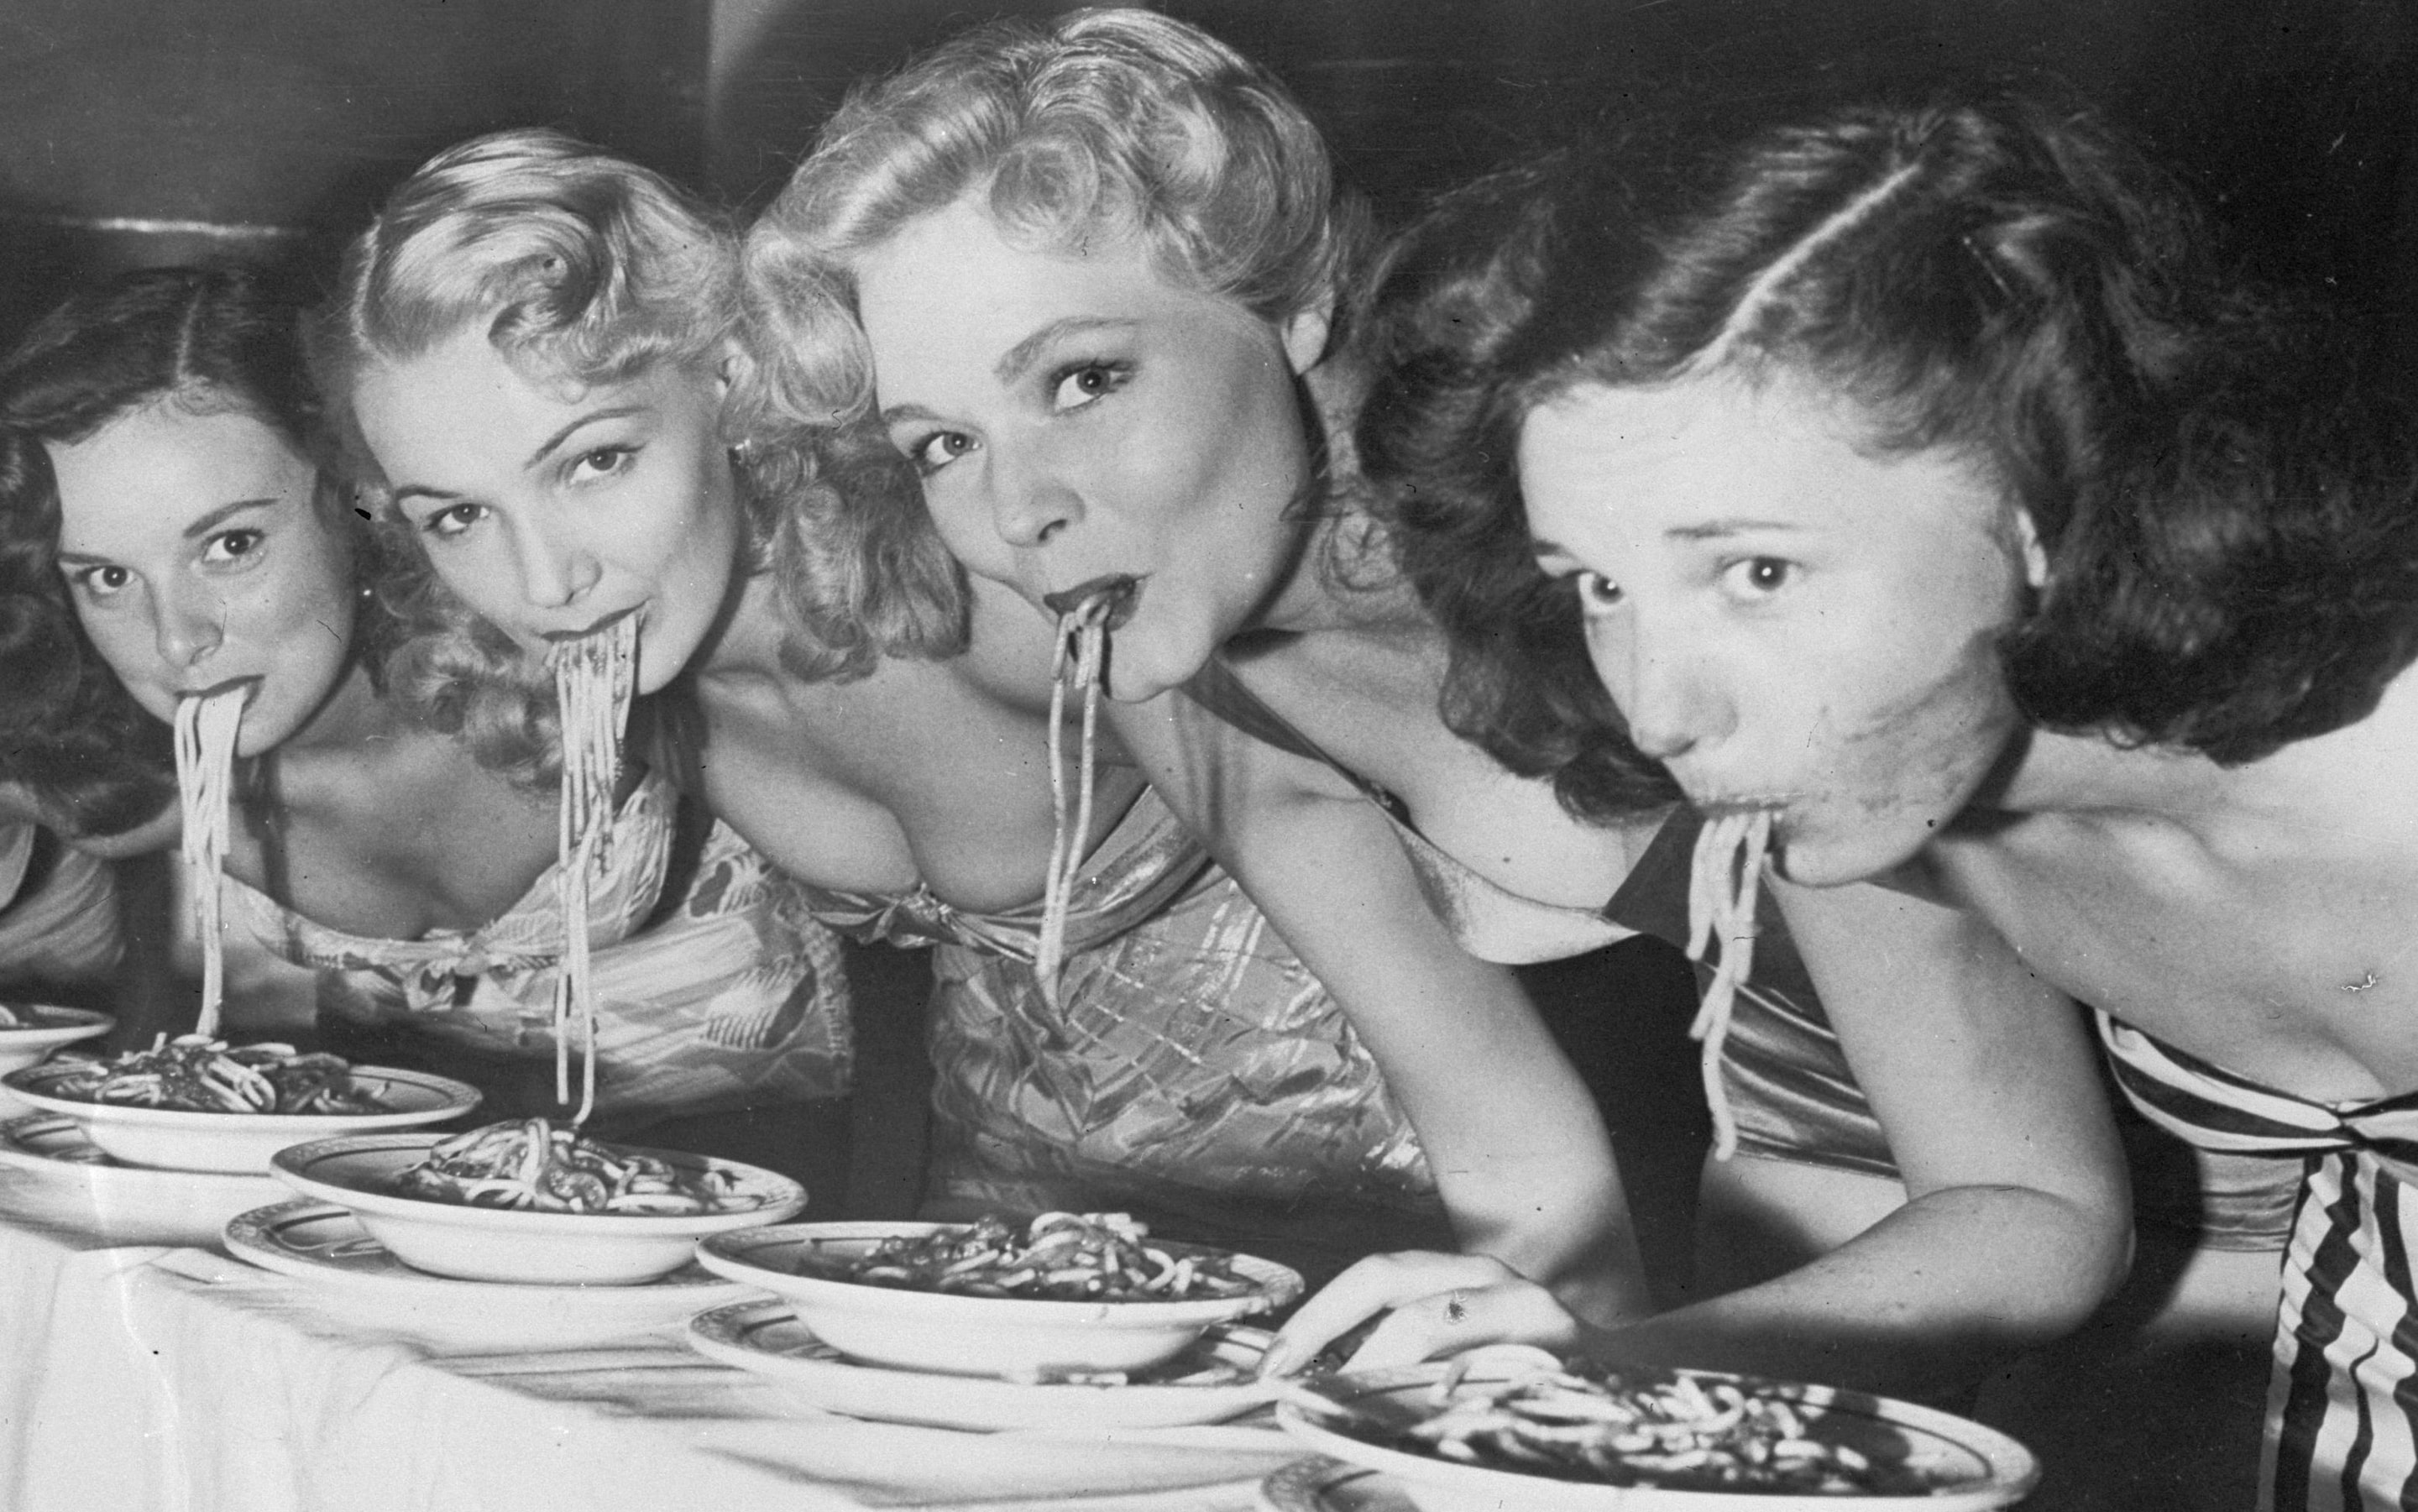 Eating pasta helps you lose weight, says Italian study